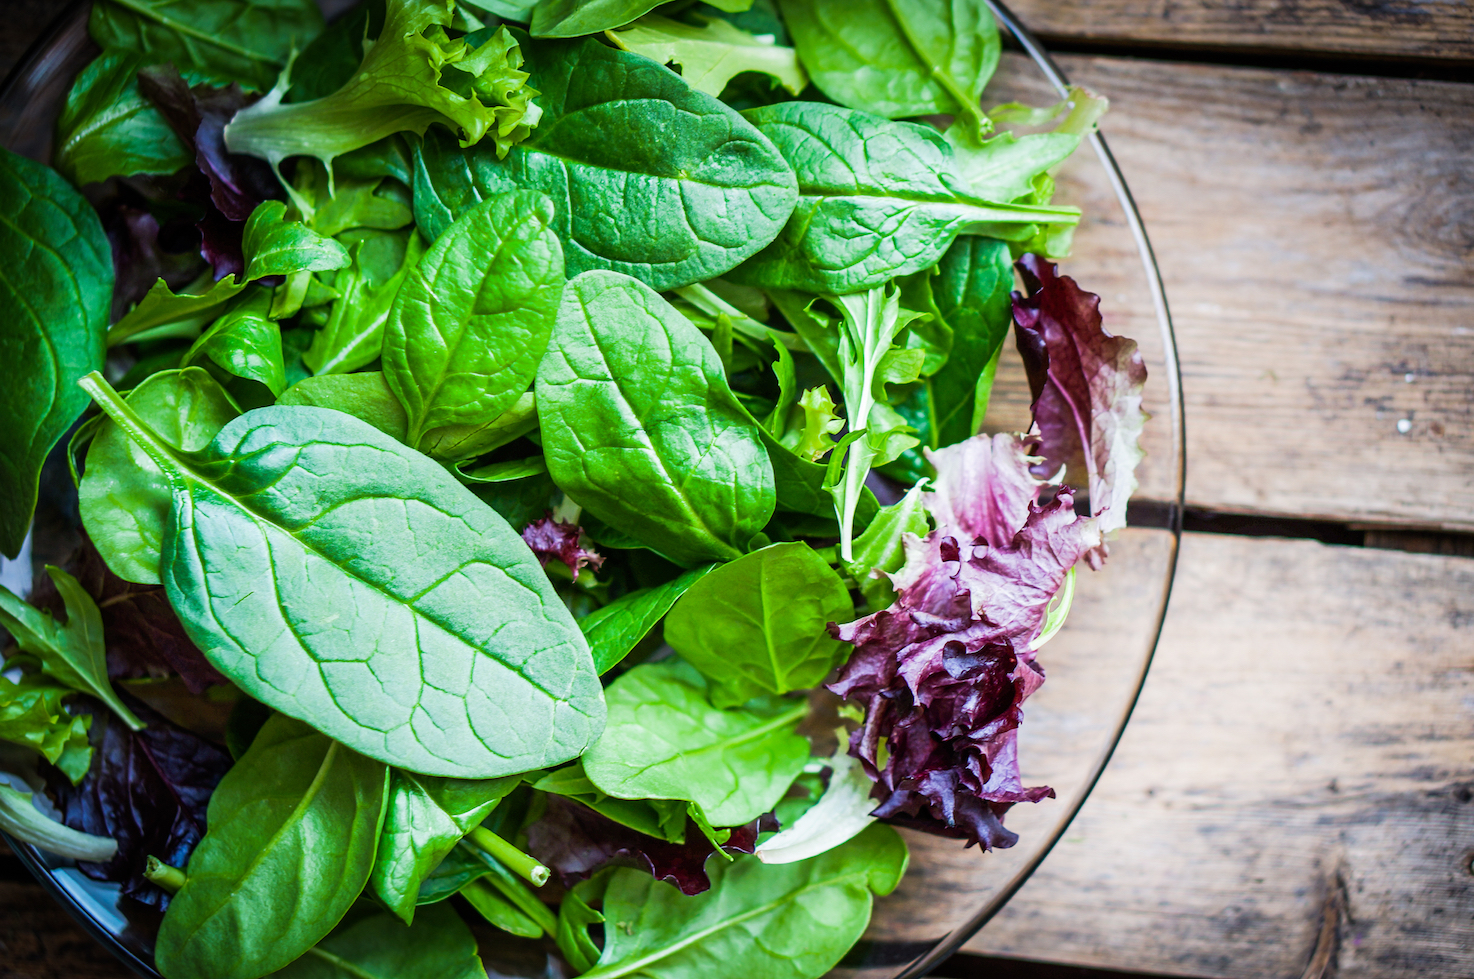 According to a recent study, eating roughly one serving per day of green, leafy vegetables may improve your memory and thinking skills.